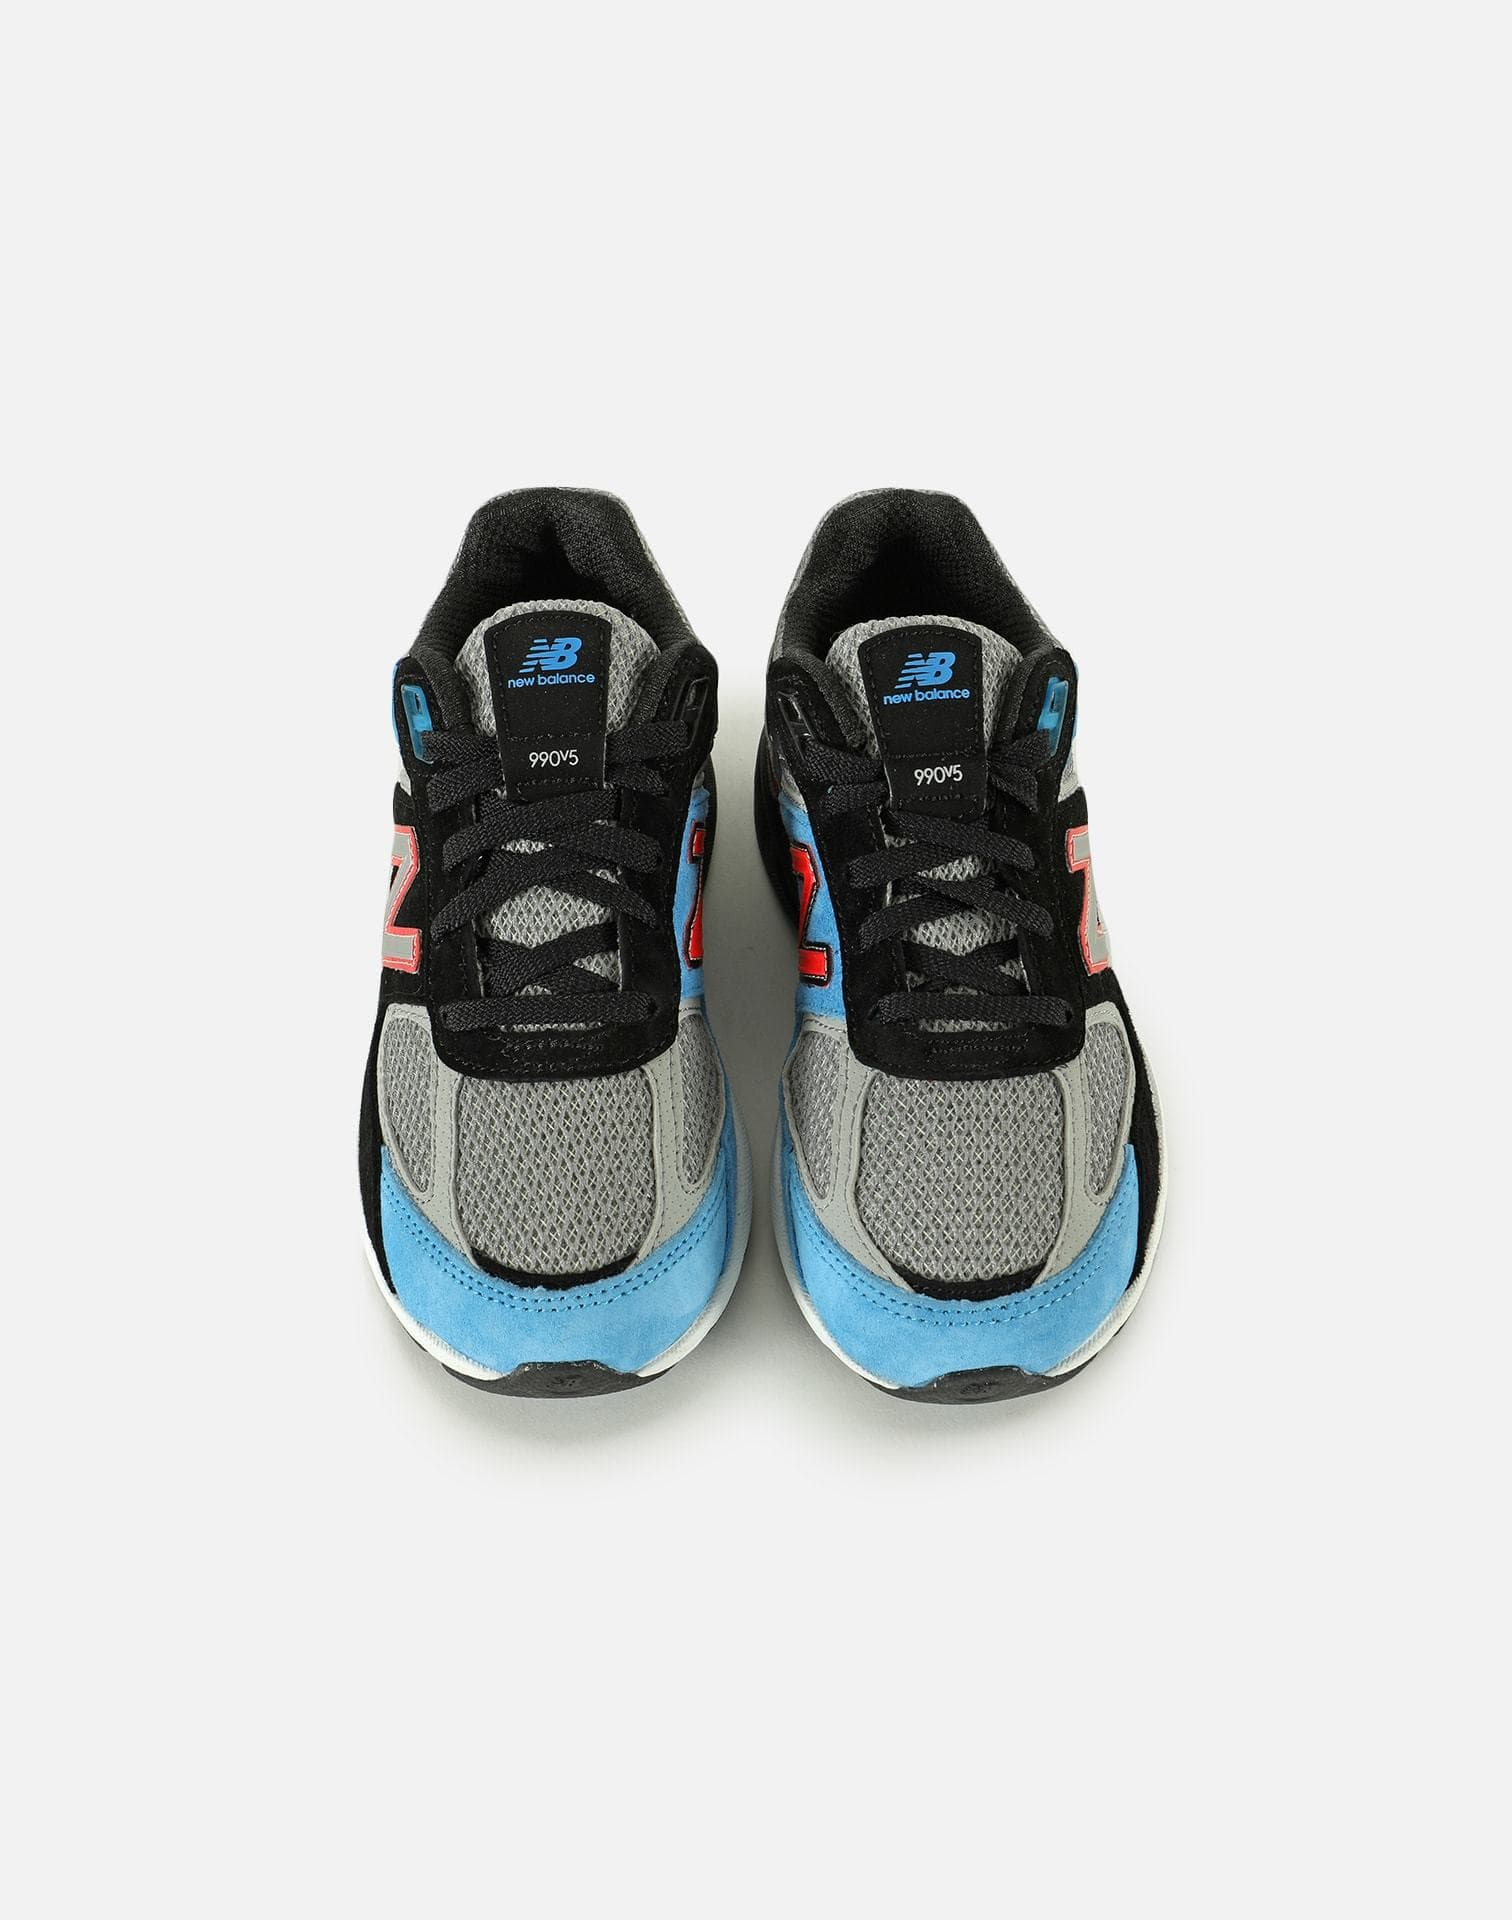 New Balance 990V5 'Fast Lane' SMU Pre-School